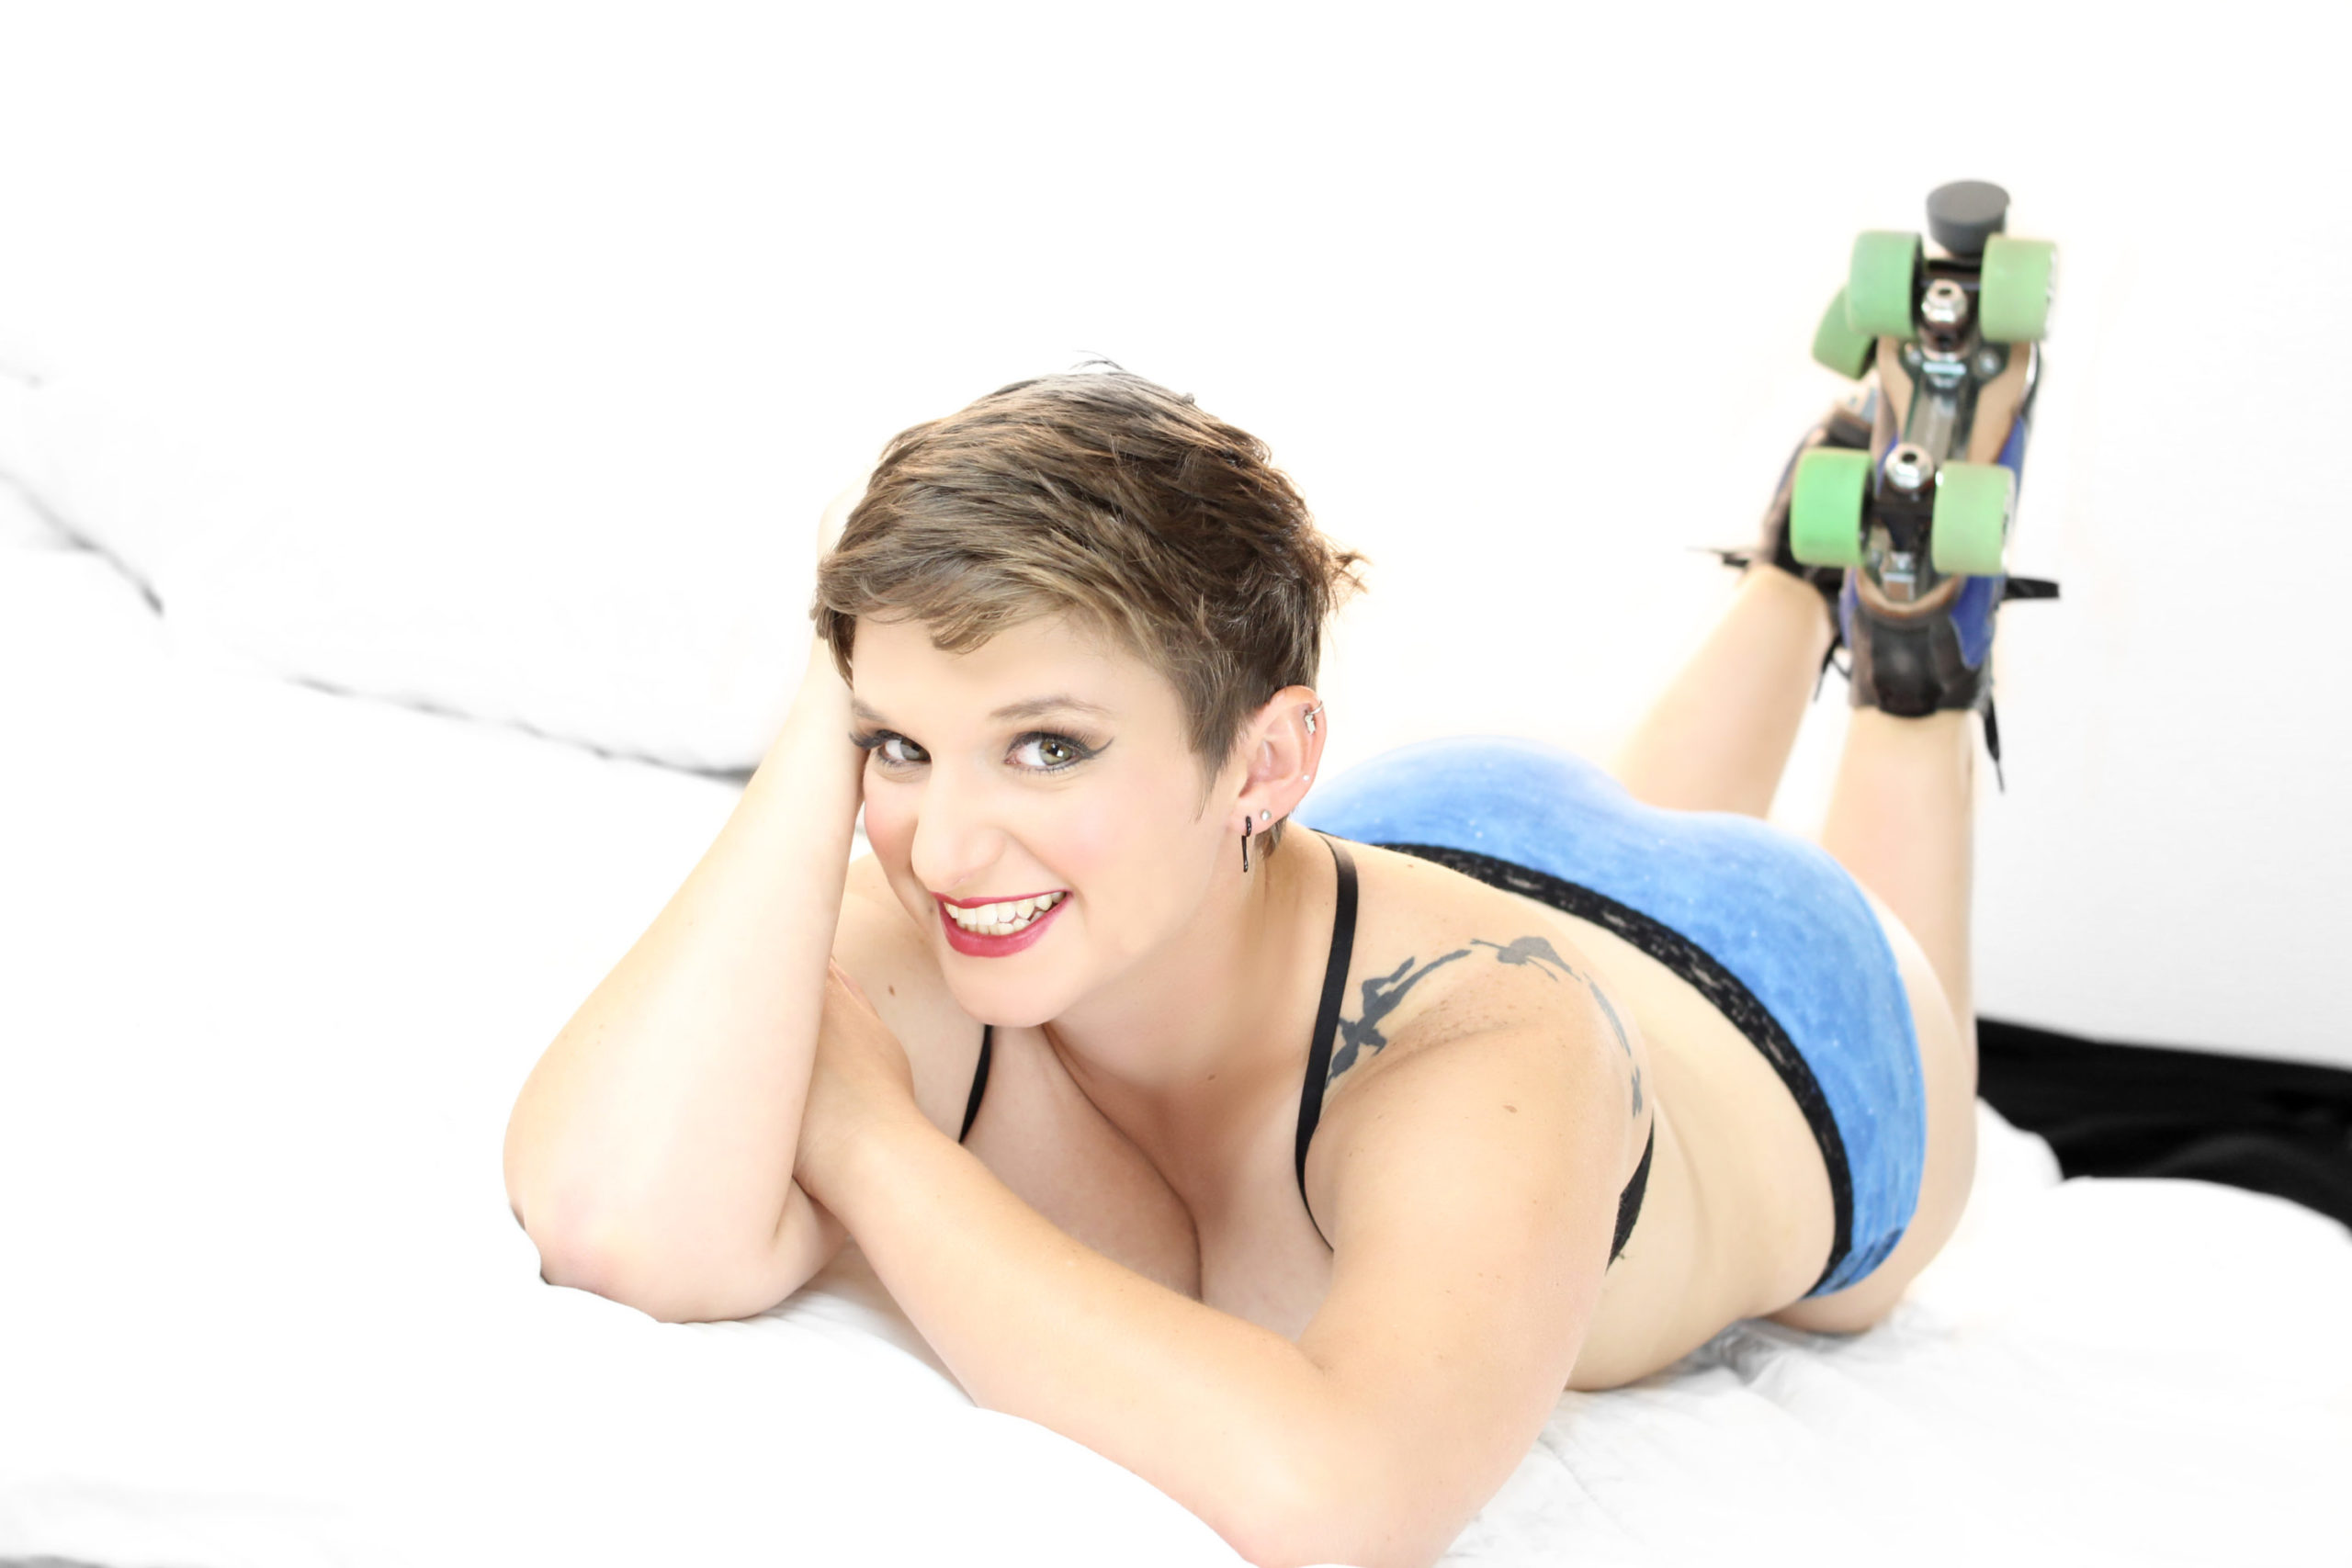 ROLLER DERBY BOUDOIR PHOTOGRAPHY | COWEN ANGUS BAILEY PHOTOGRAPHY